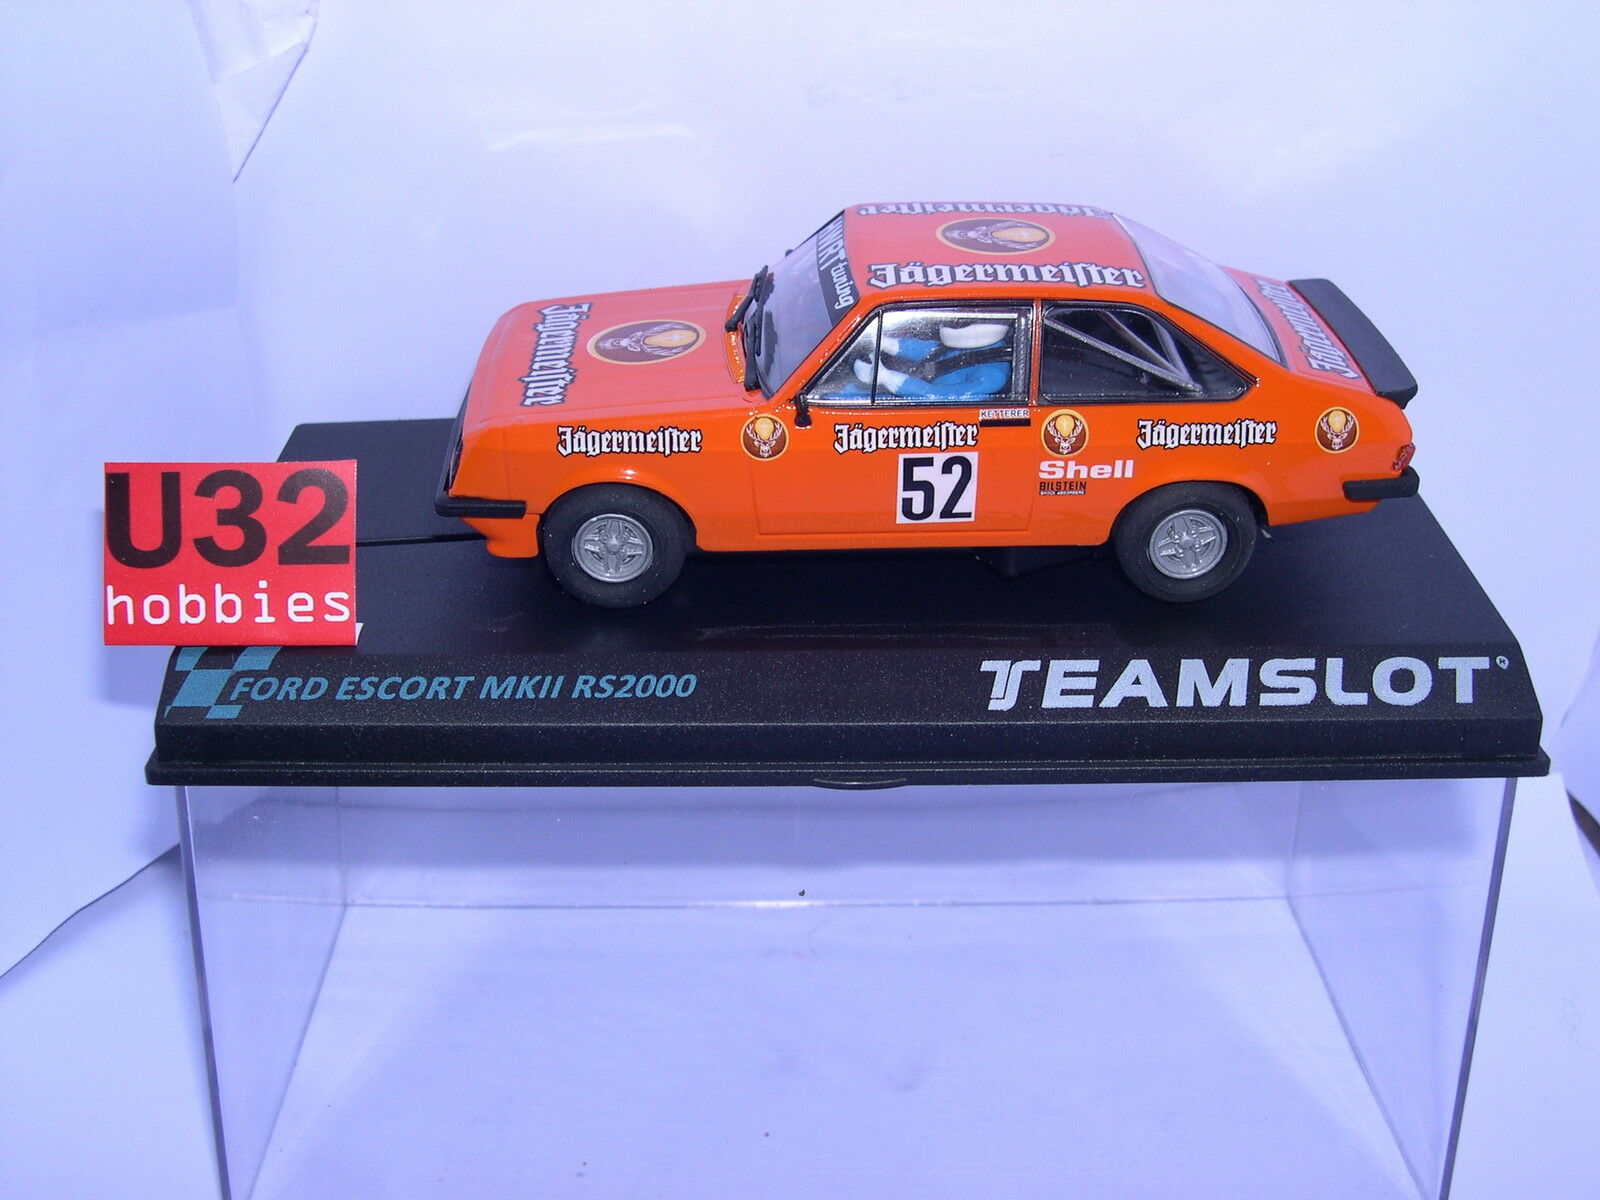 Team Slot 12704 Ford Escort Mkii Rs2000 Auerberg'81 Ketterer MB